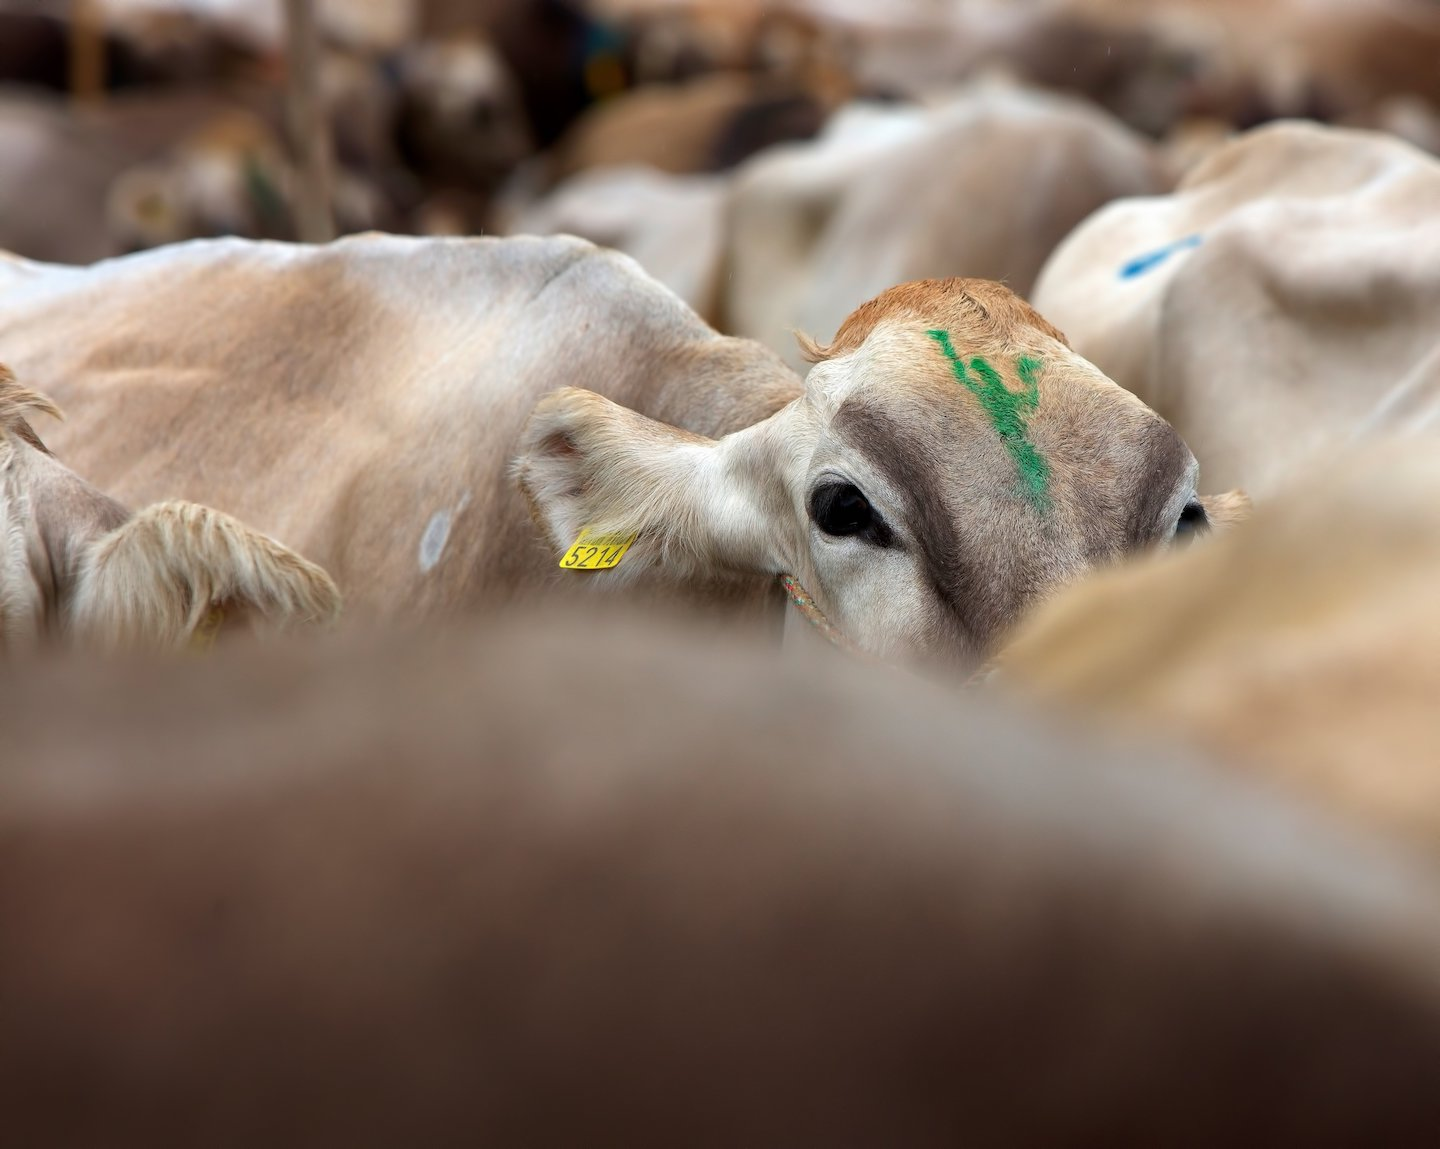 Livestock Farming Takes Up 41% of U.S. Land; and Your 5-A-Day